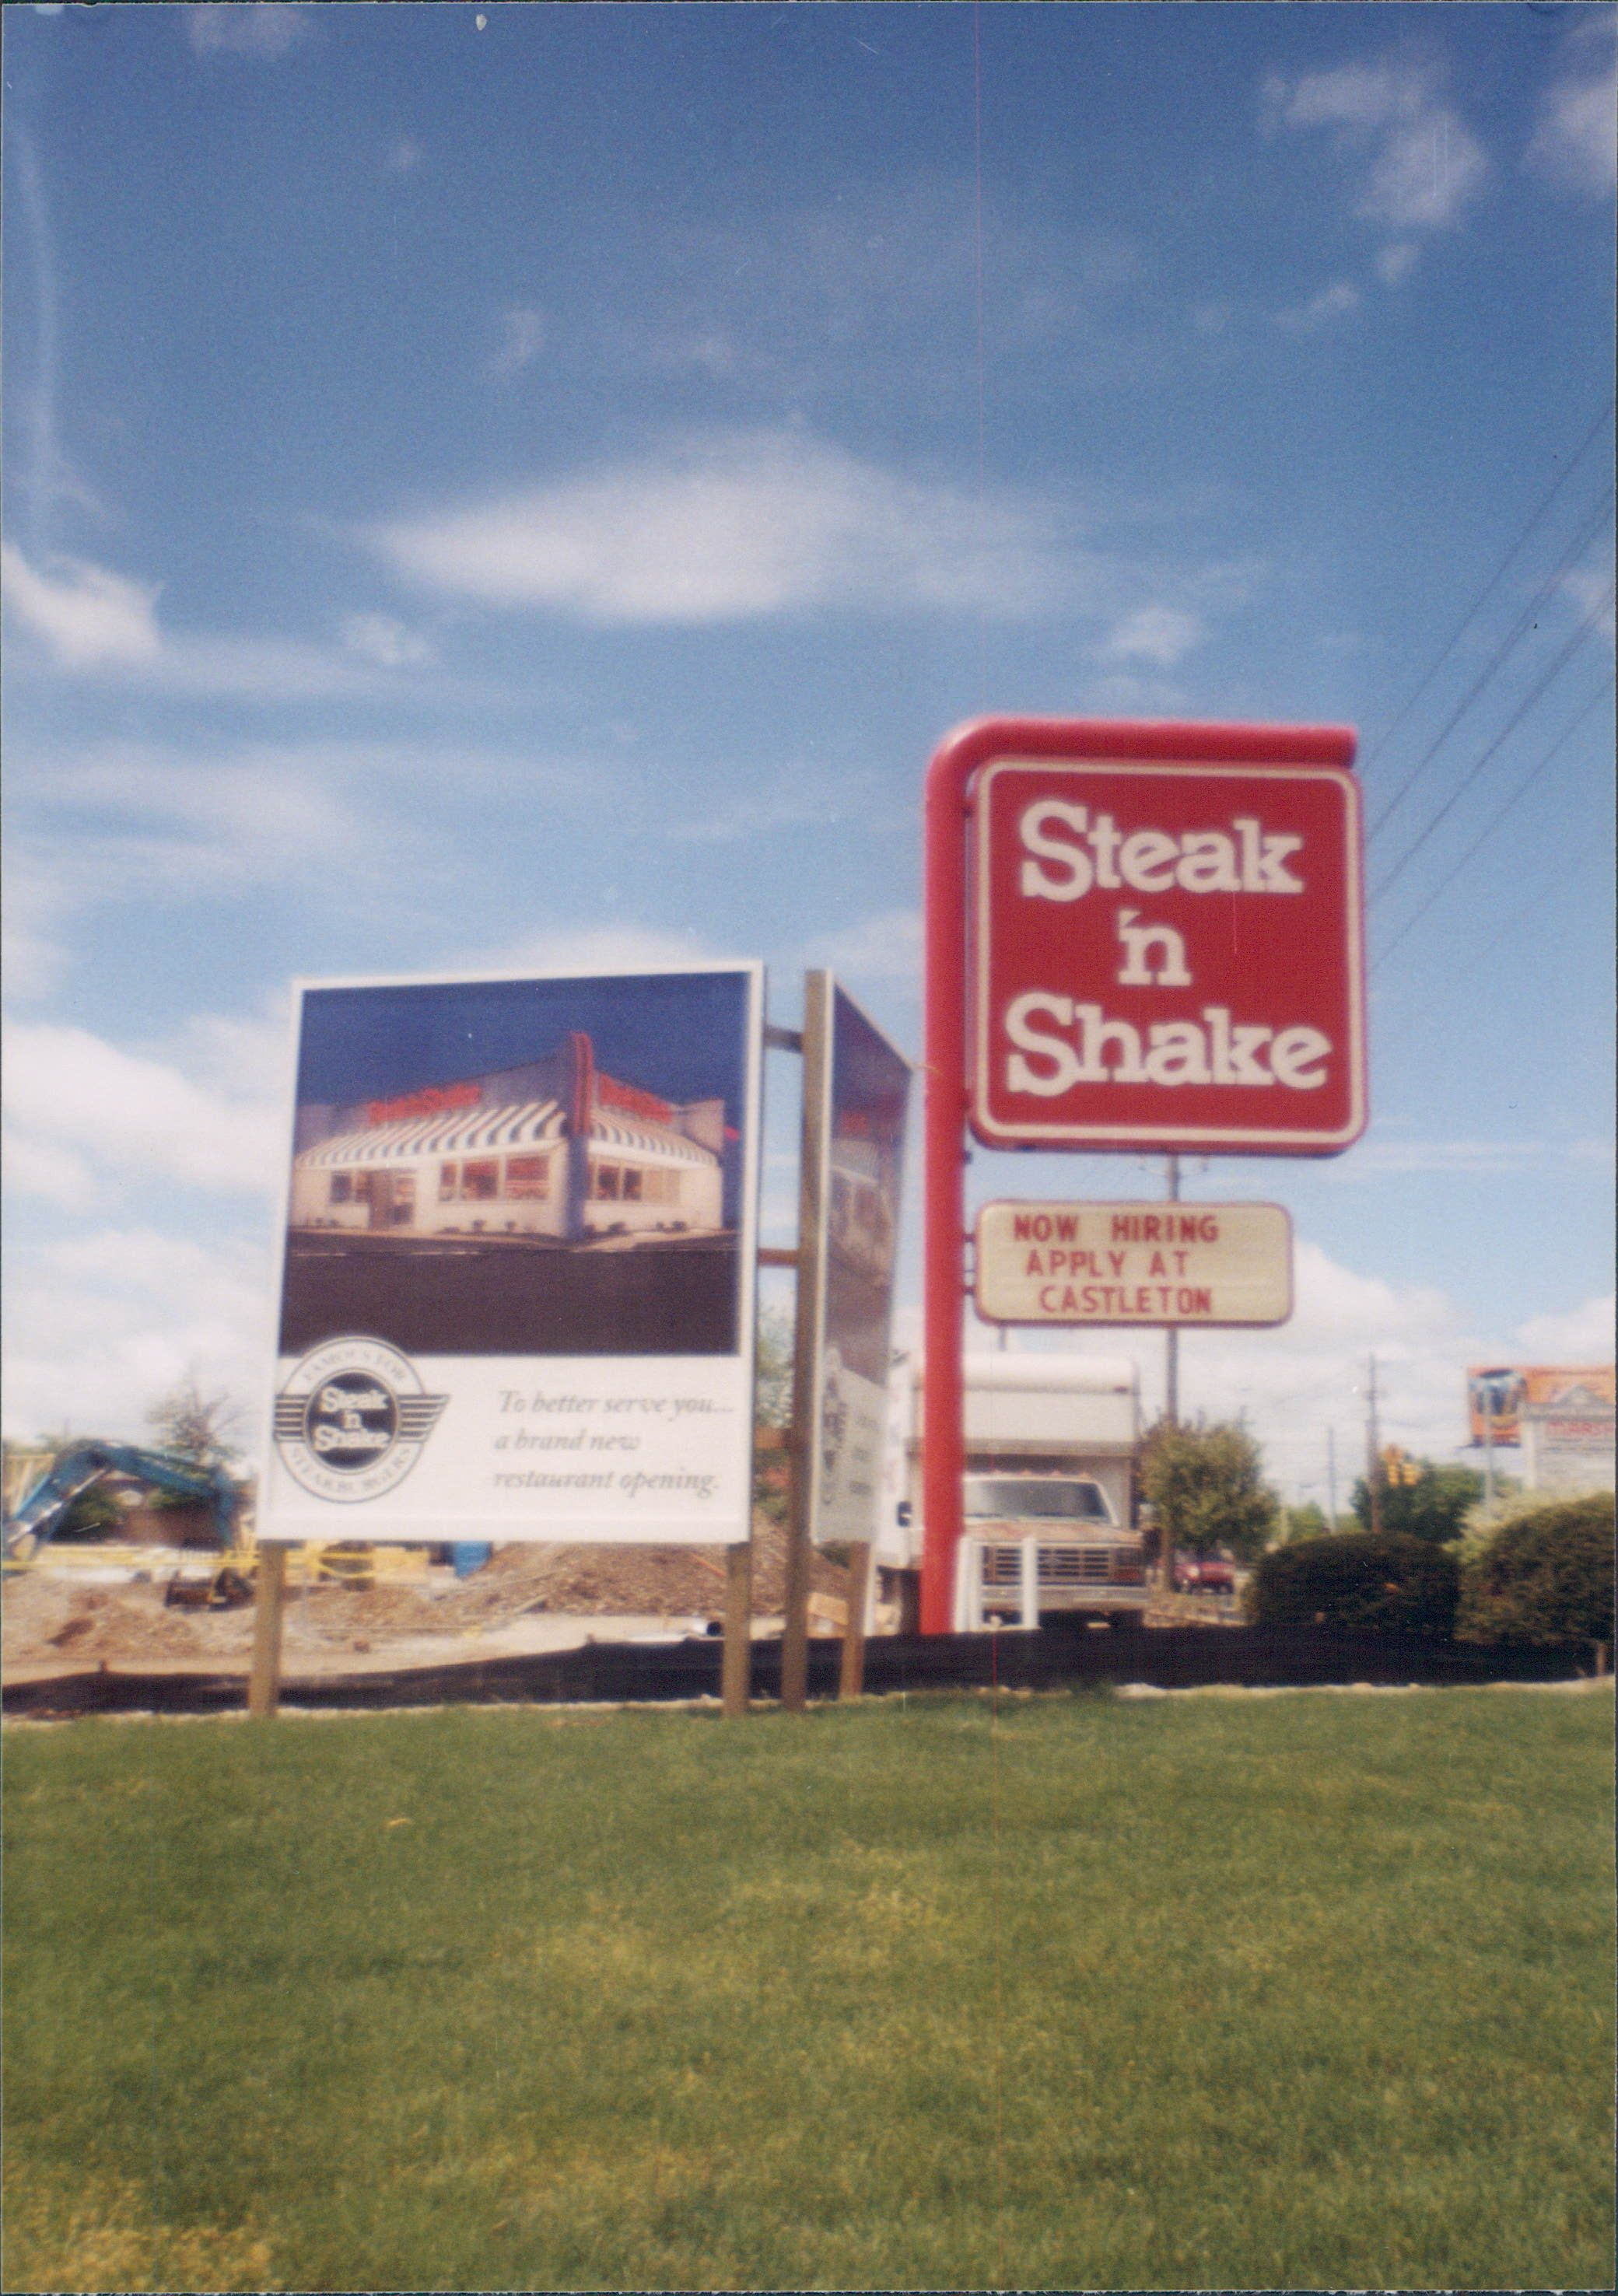 Steak N Shake Steak, Shakes, Highway signs